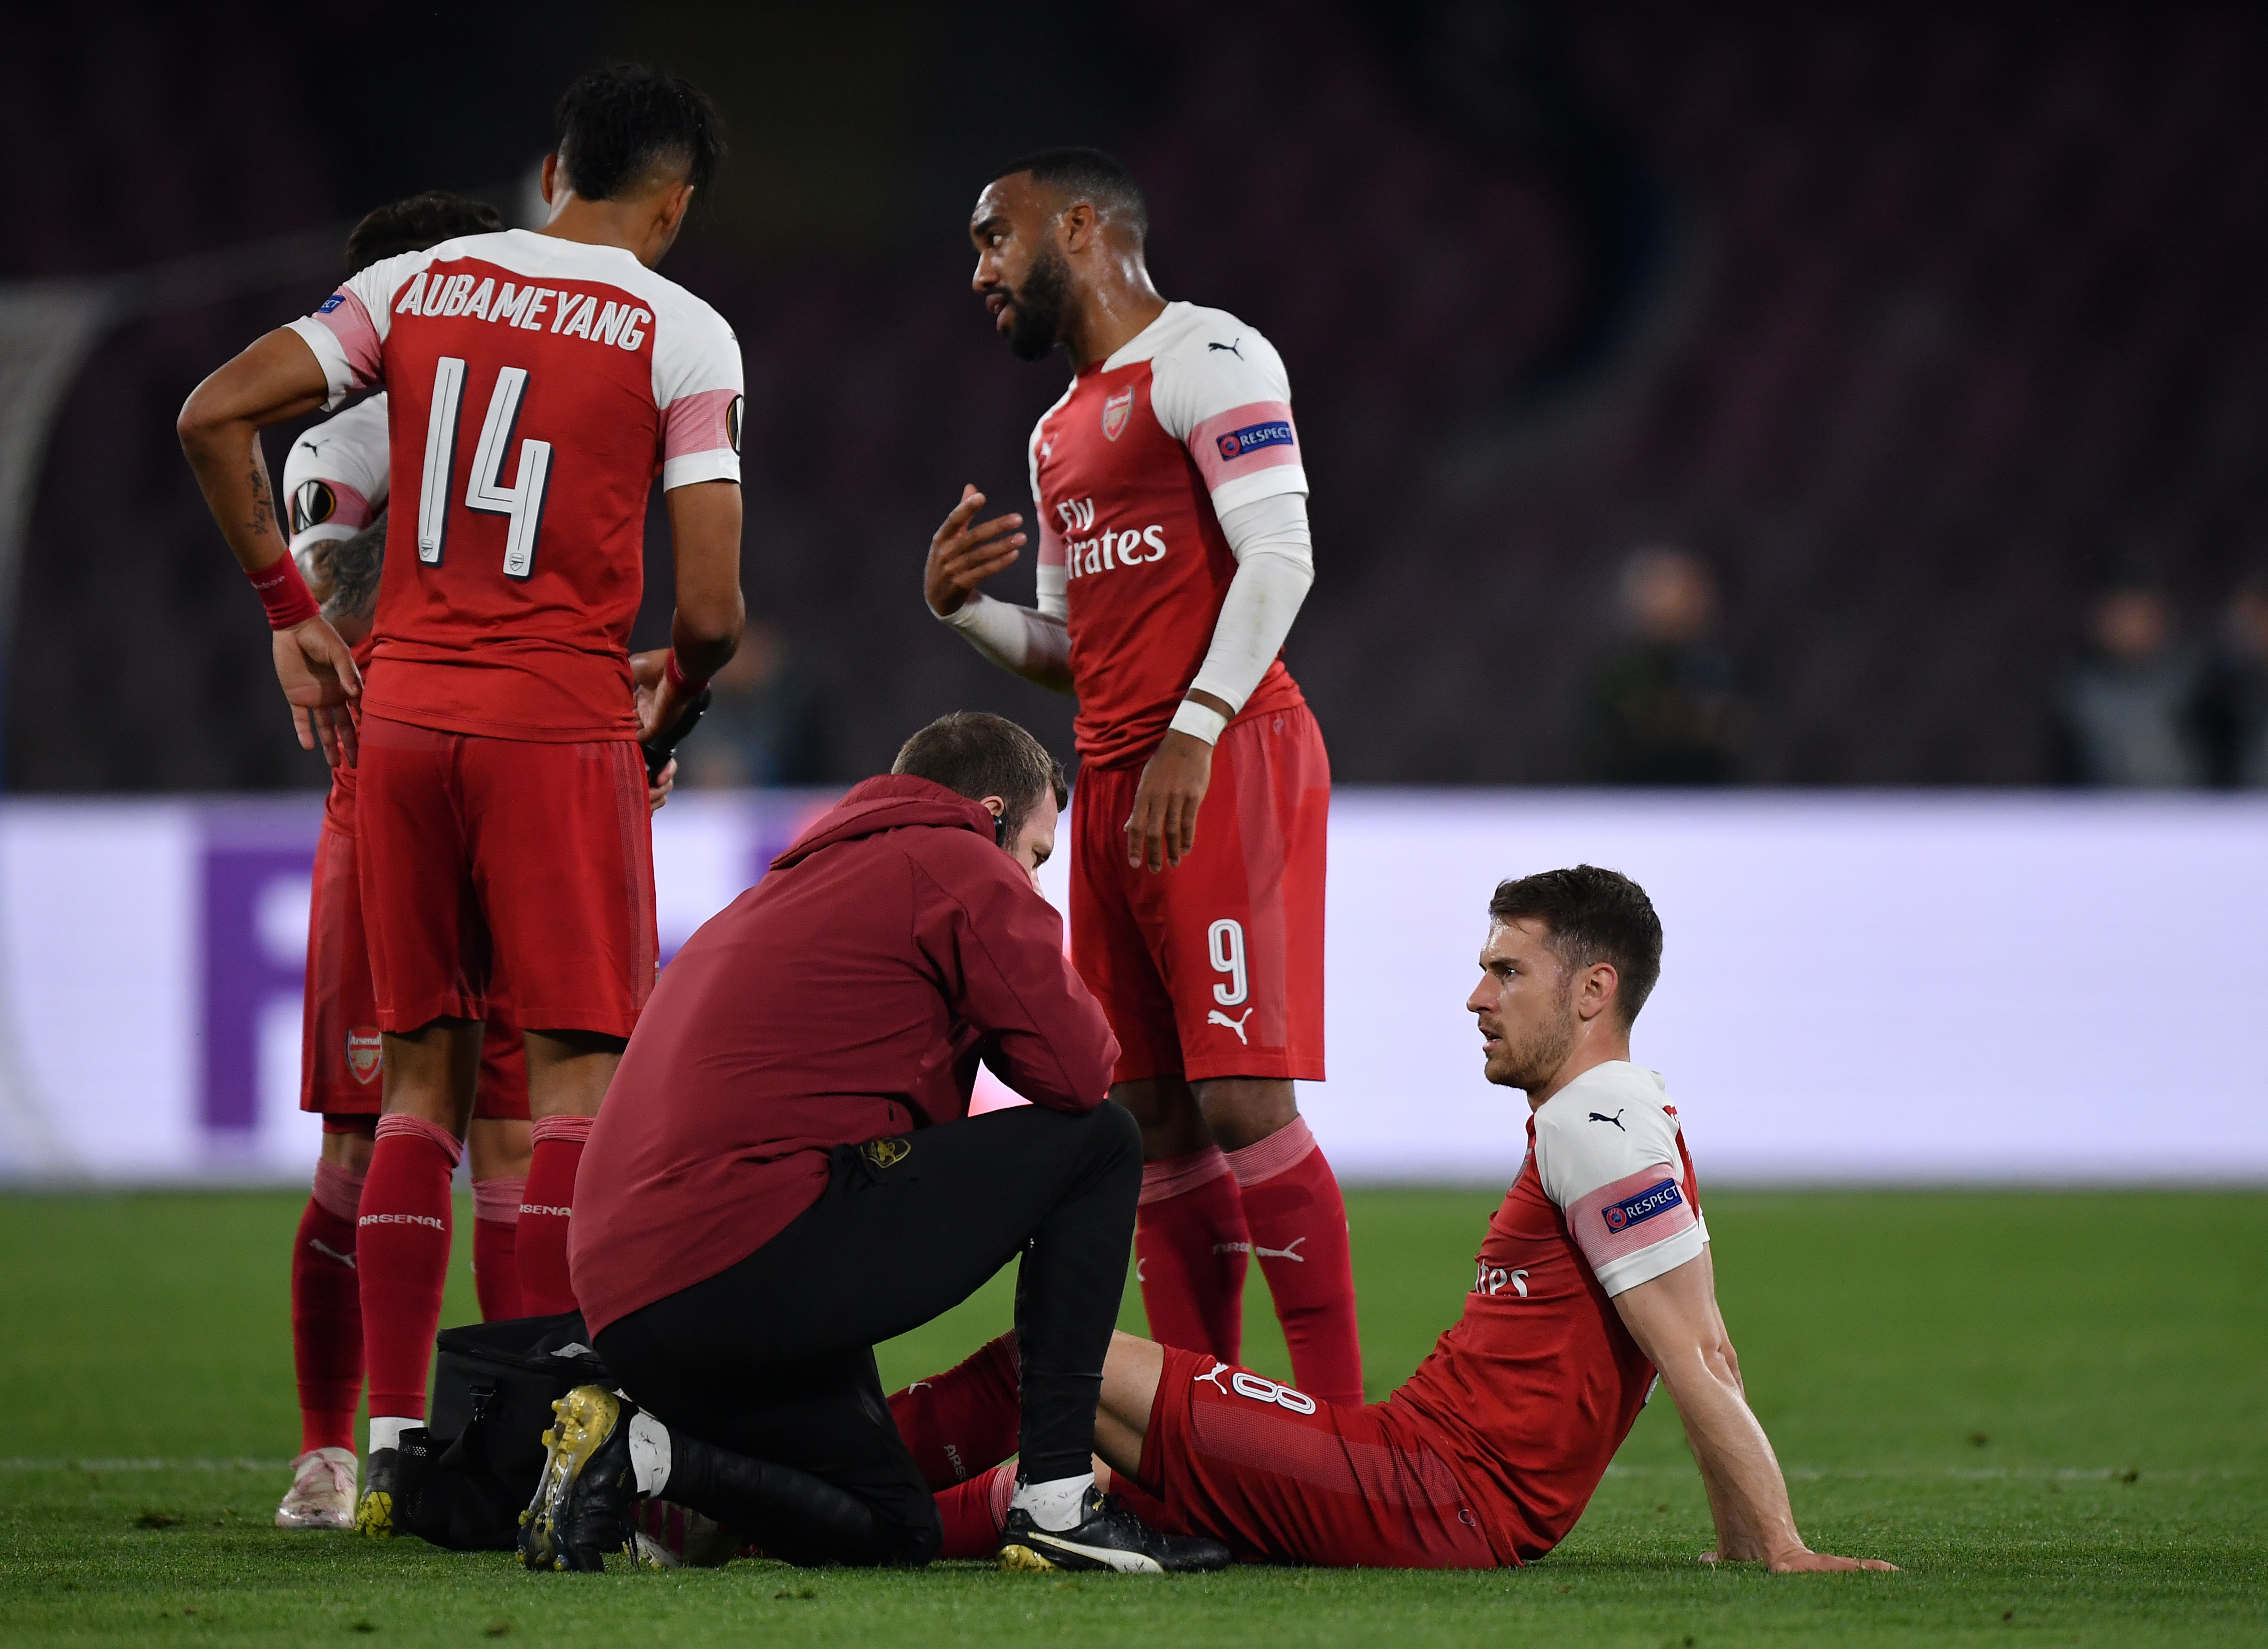 Arsenal MF Aaron Ramsey recieves treatment during the UEFA Europa League Quarter Final Second Leg match against Napoli, Apr. 18, 2019.